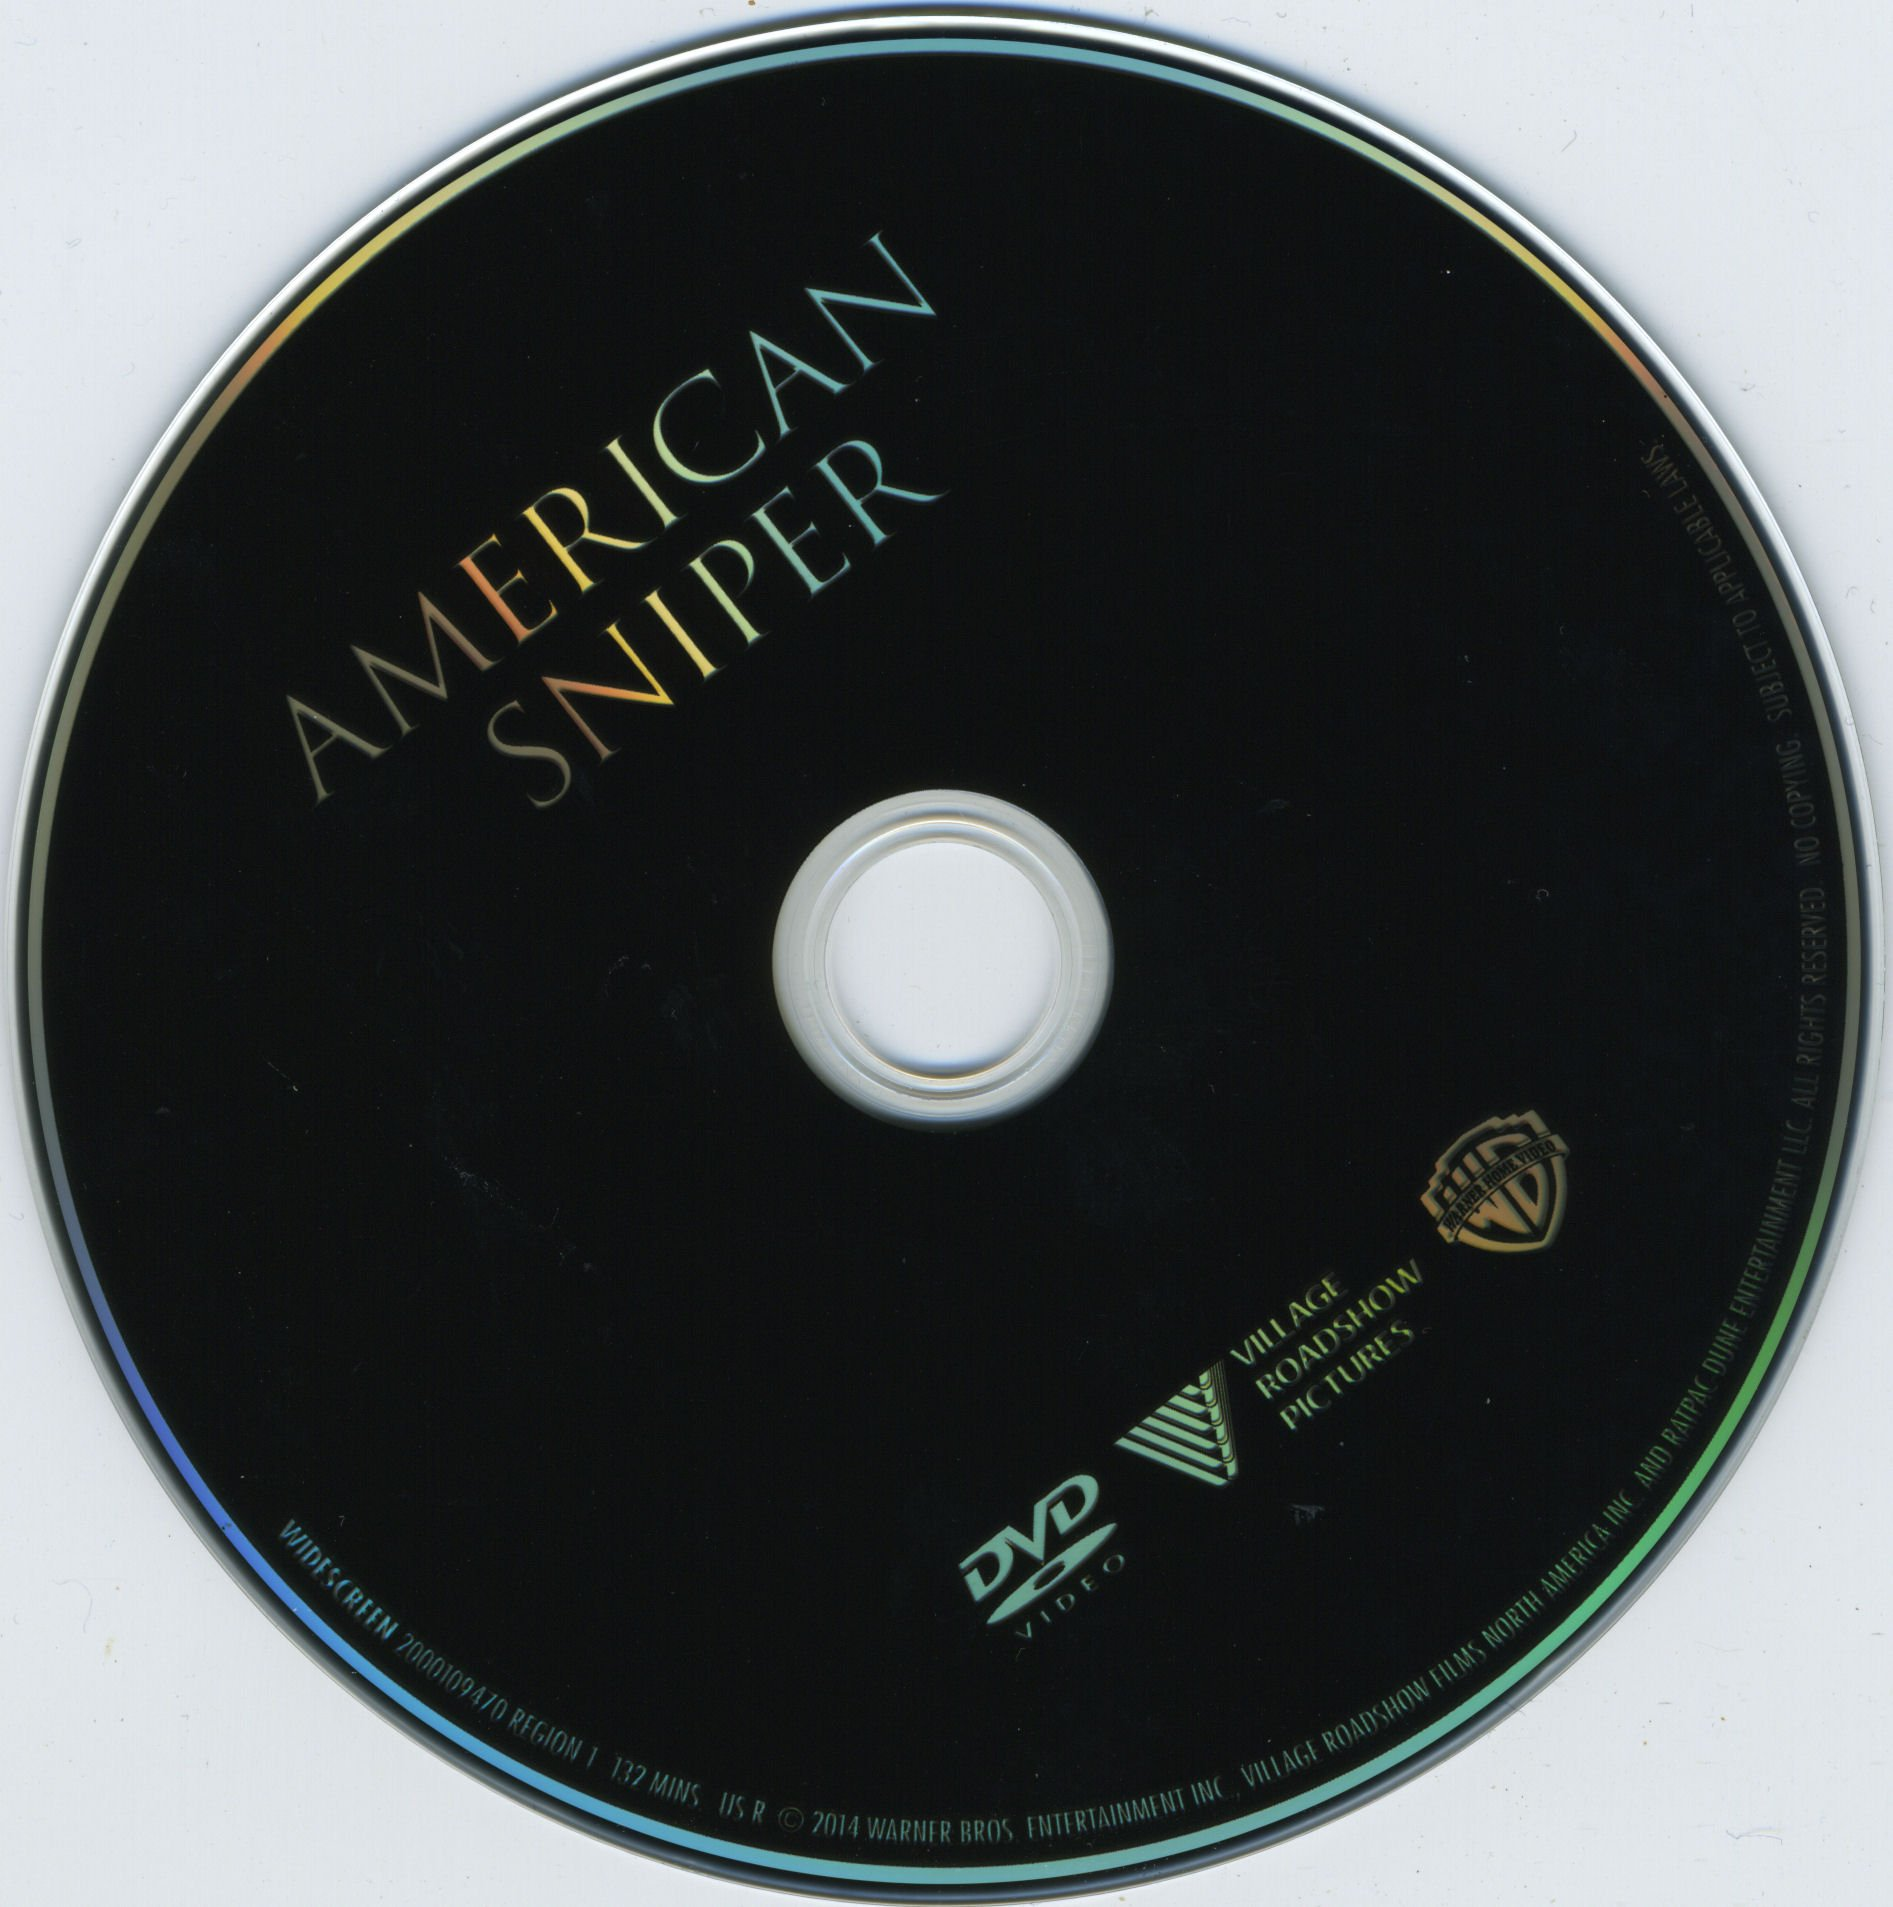 american sniper r1 blu ray label dvd covers and labels. Black Bedroom Furniture Sets. Home Design Ideas